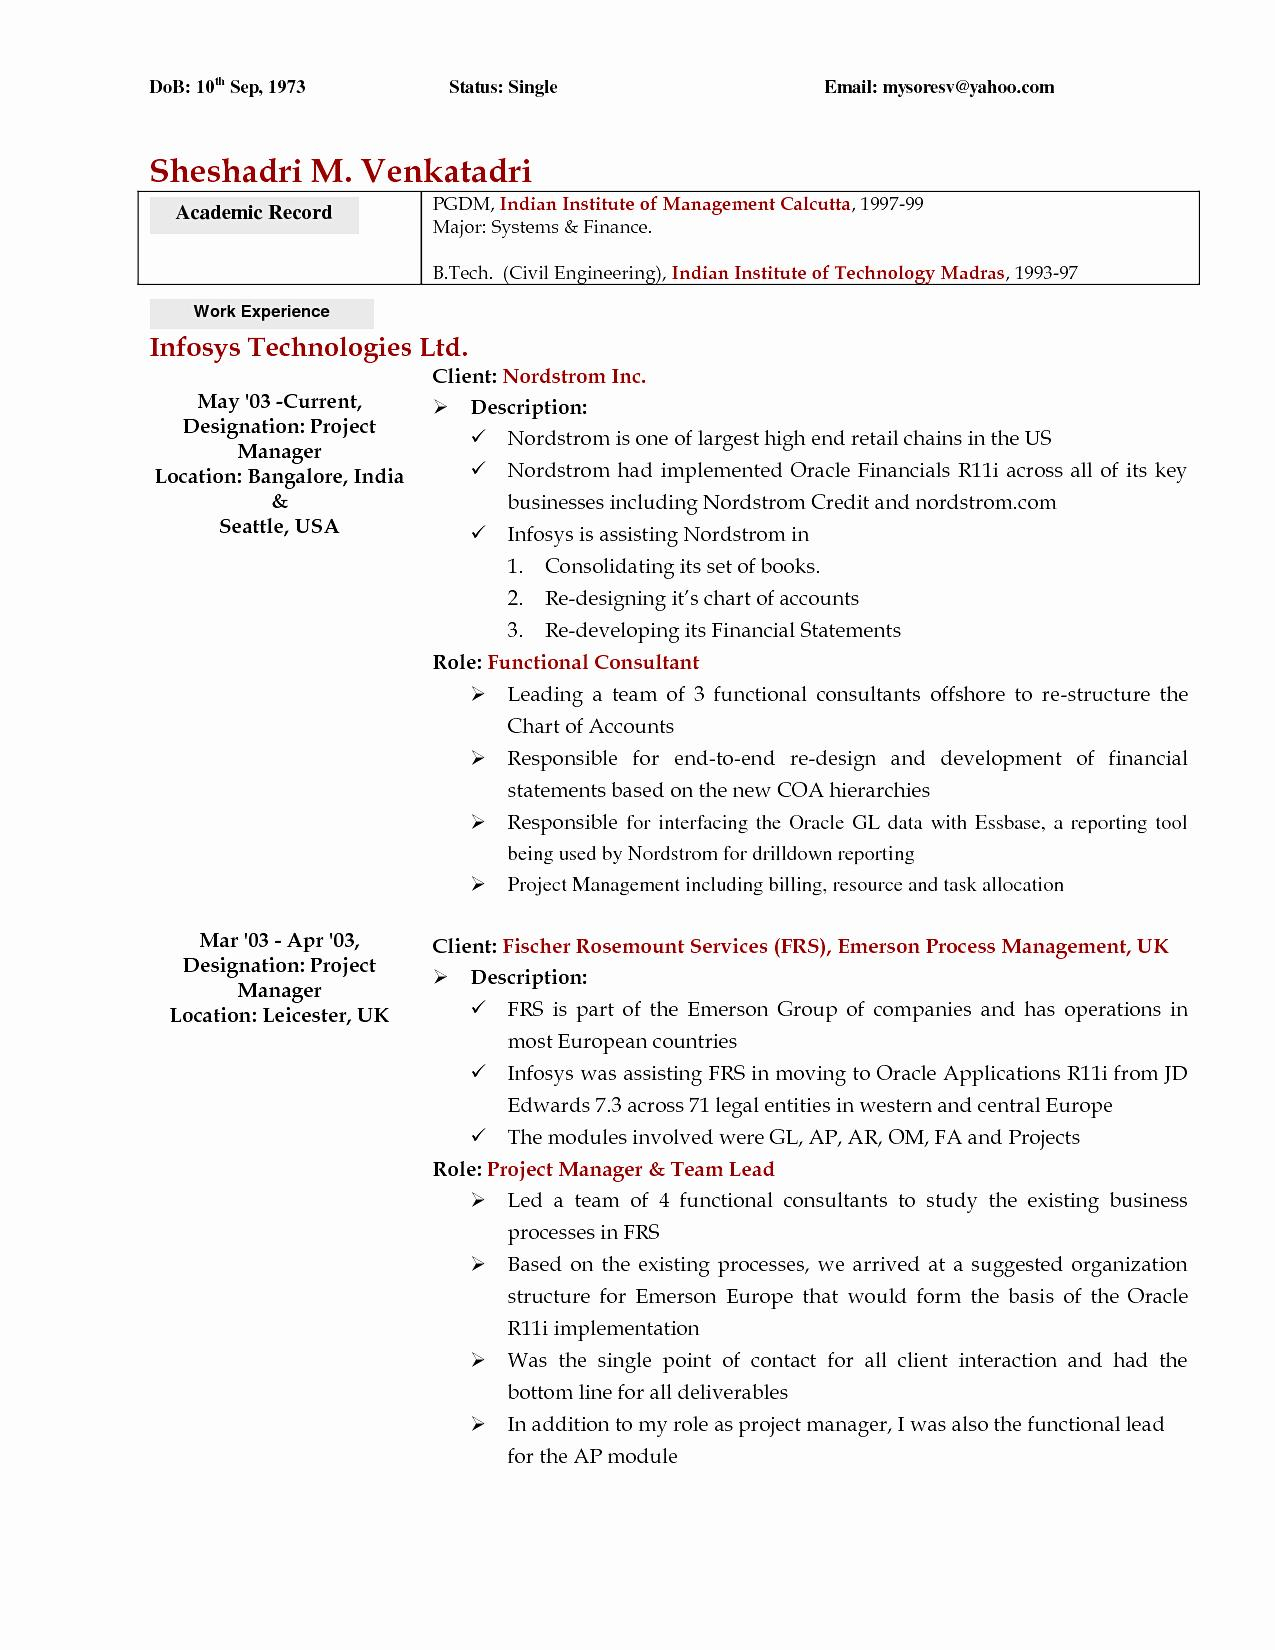 Civil Engineering Resume Template - Sample Resume Engineering Student Inspirational Civil Engineering